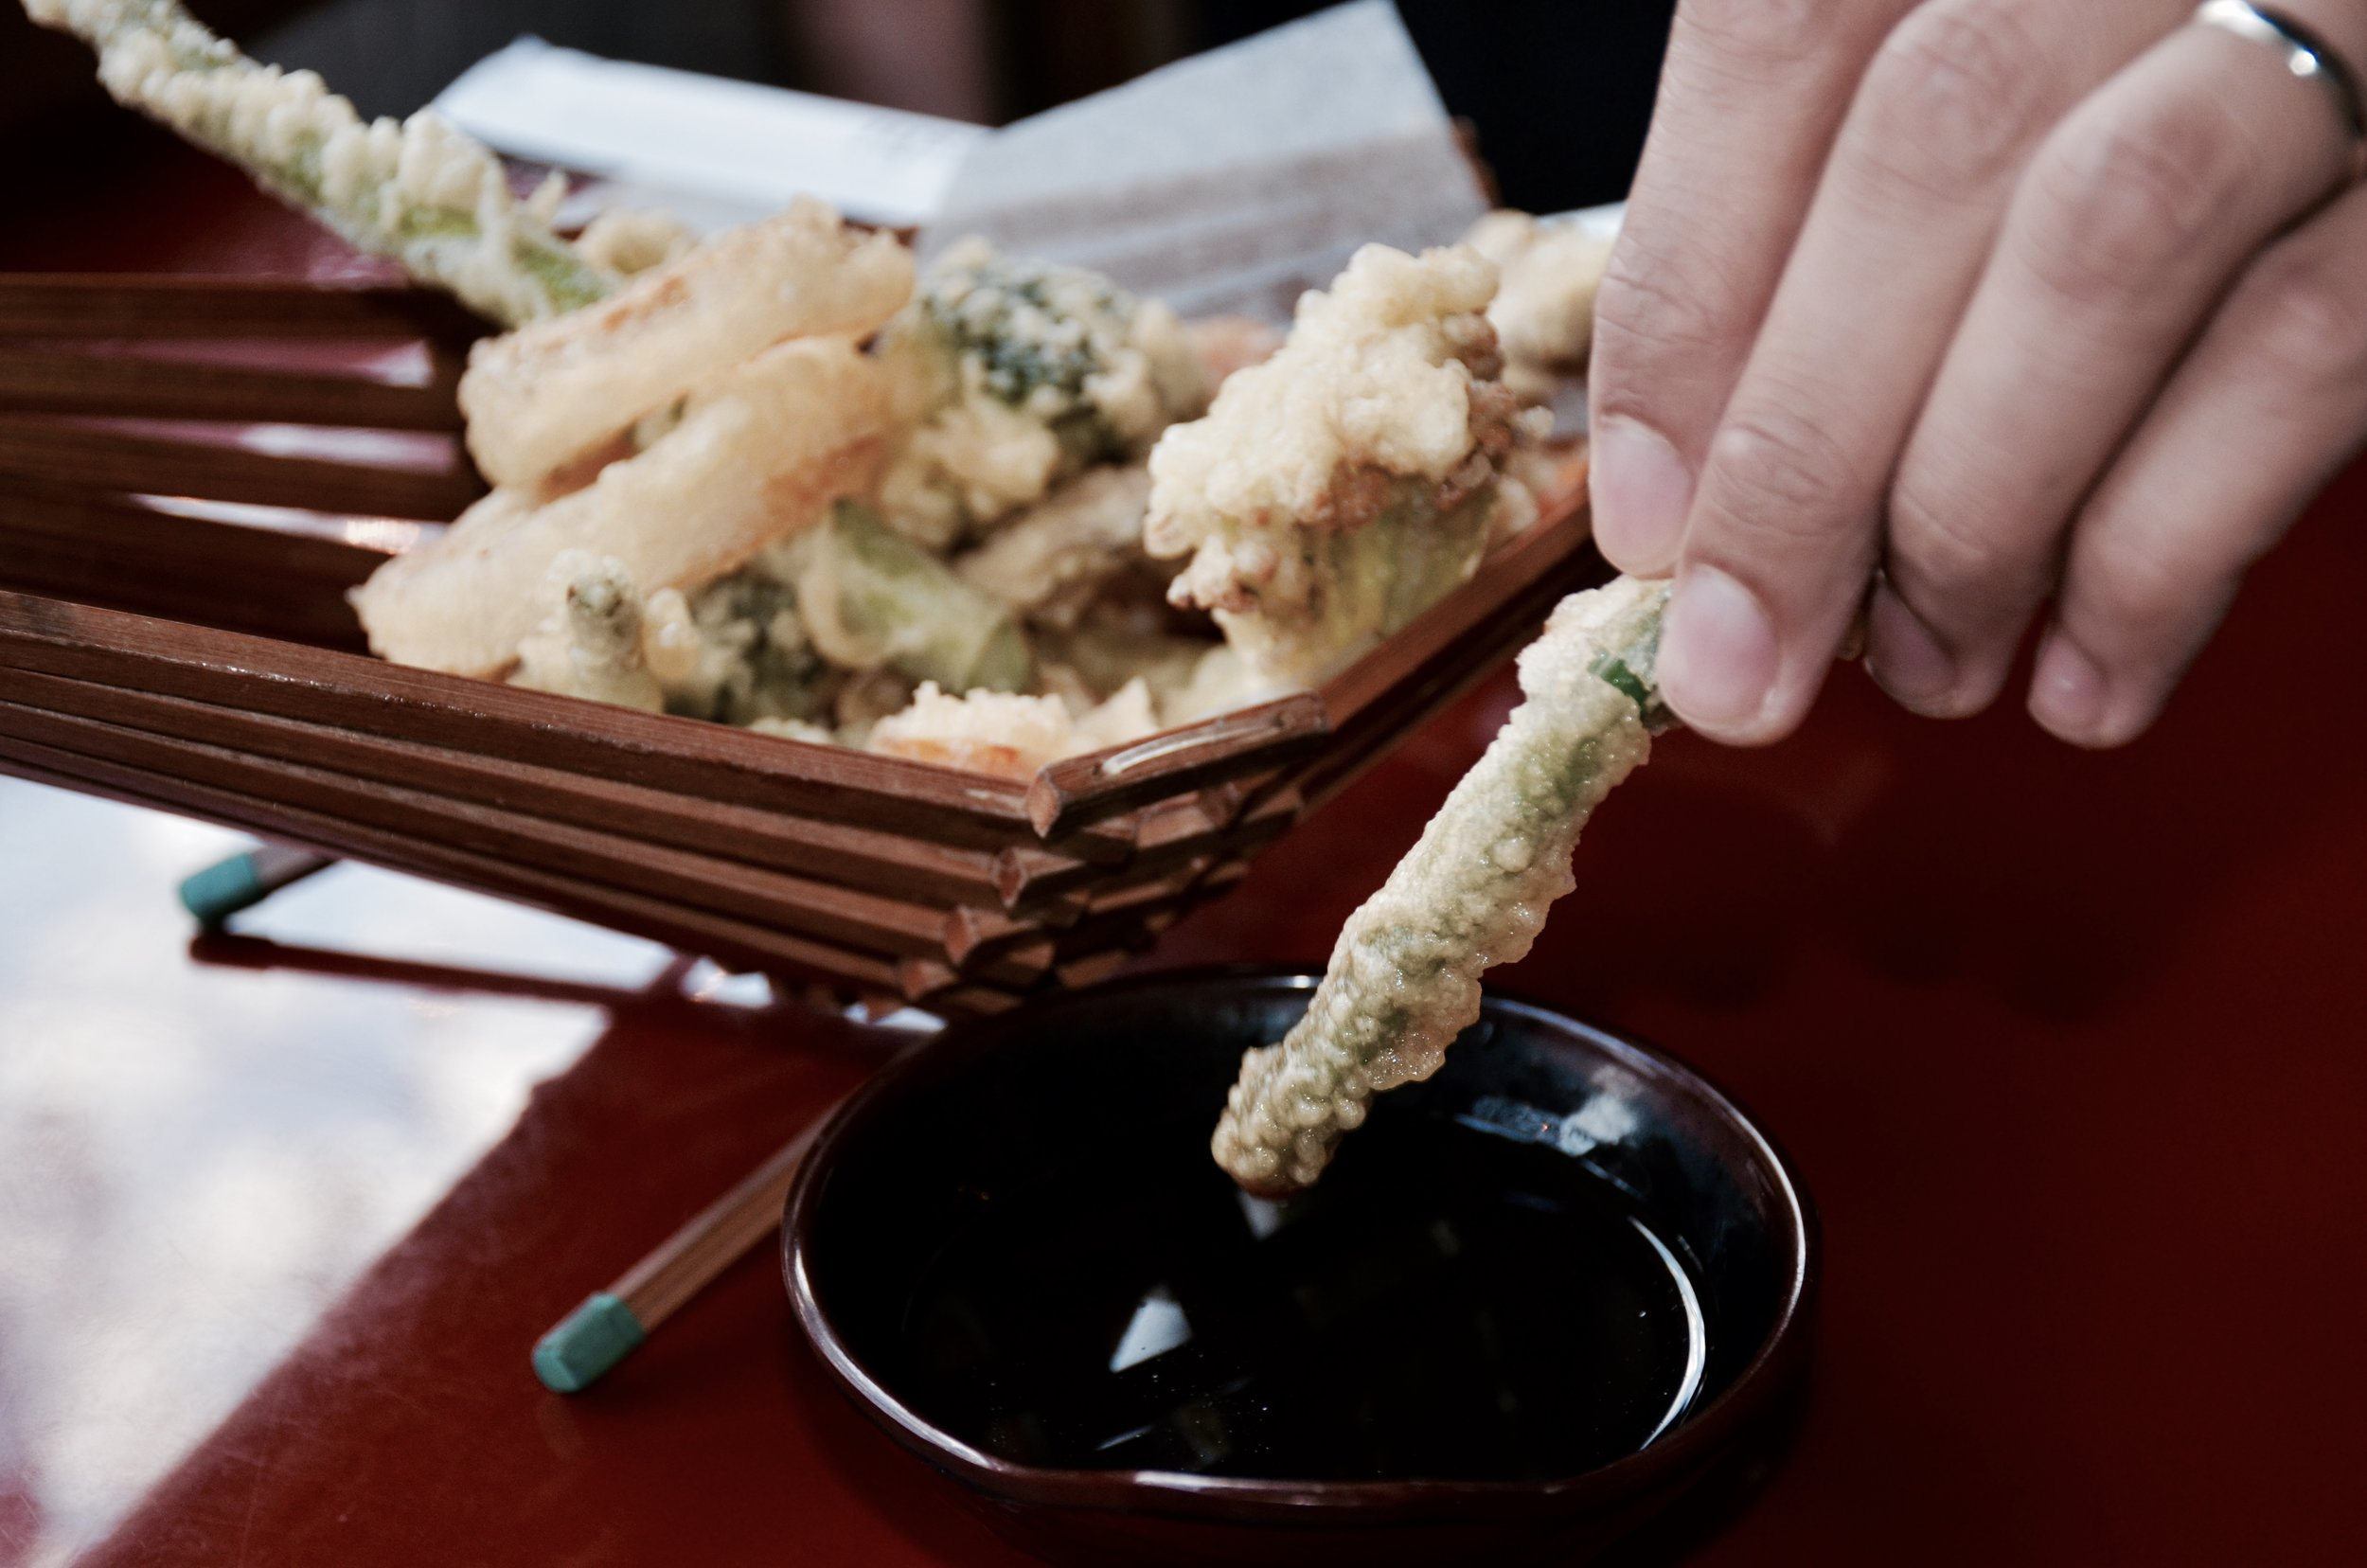 Copy of Copy of Vegetable Tempura